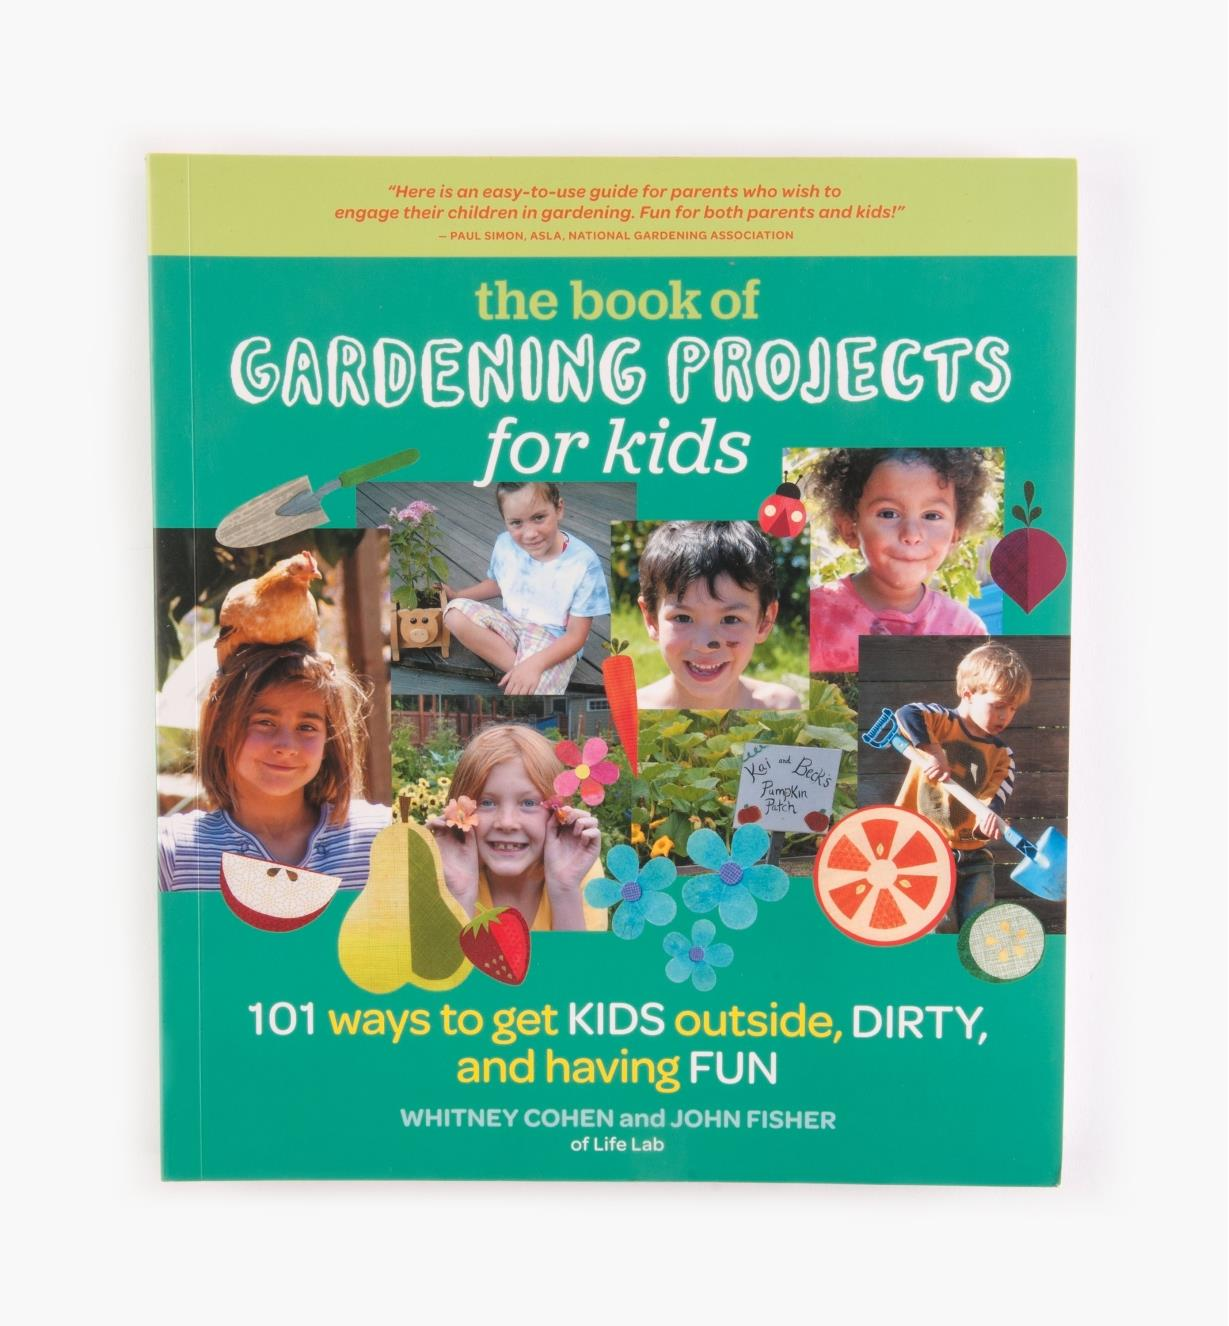 LA945 - The Book of Gardening Projects for Kids